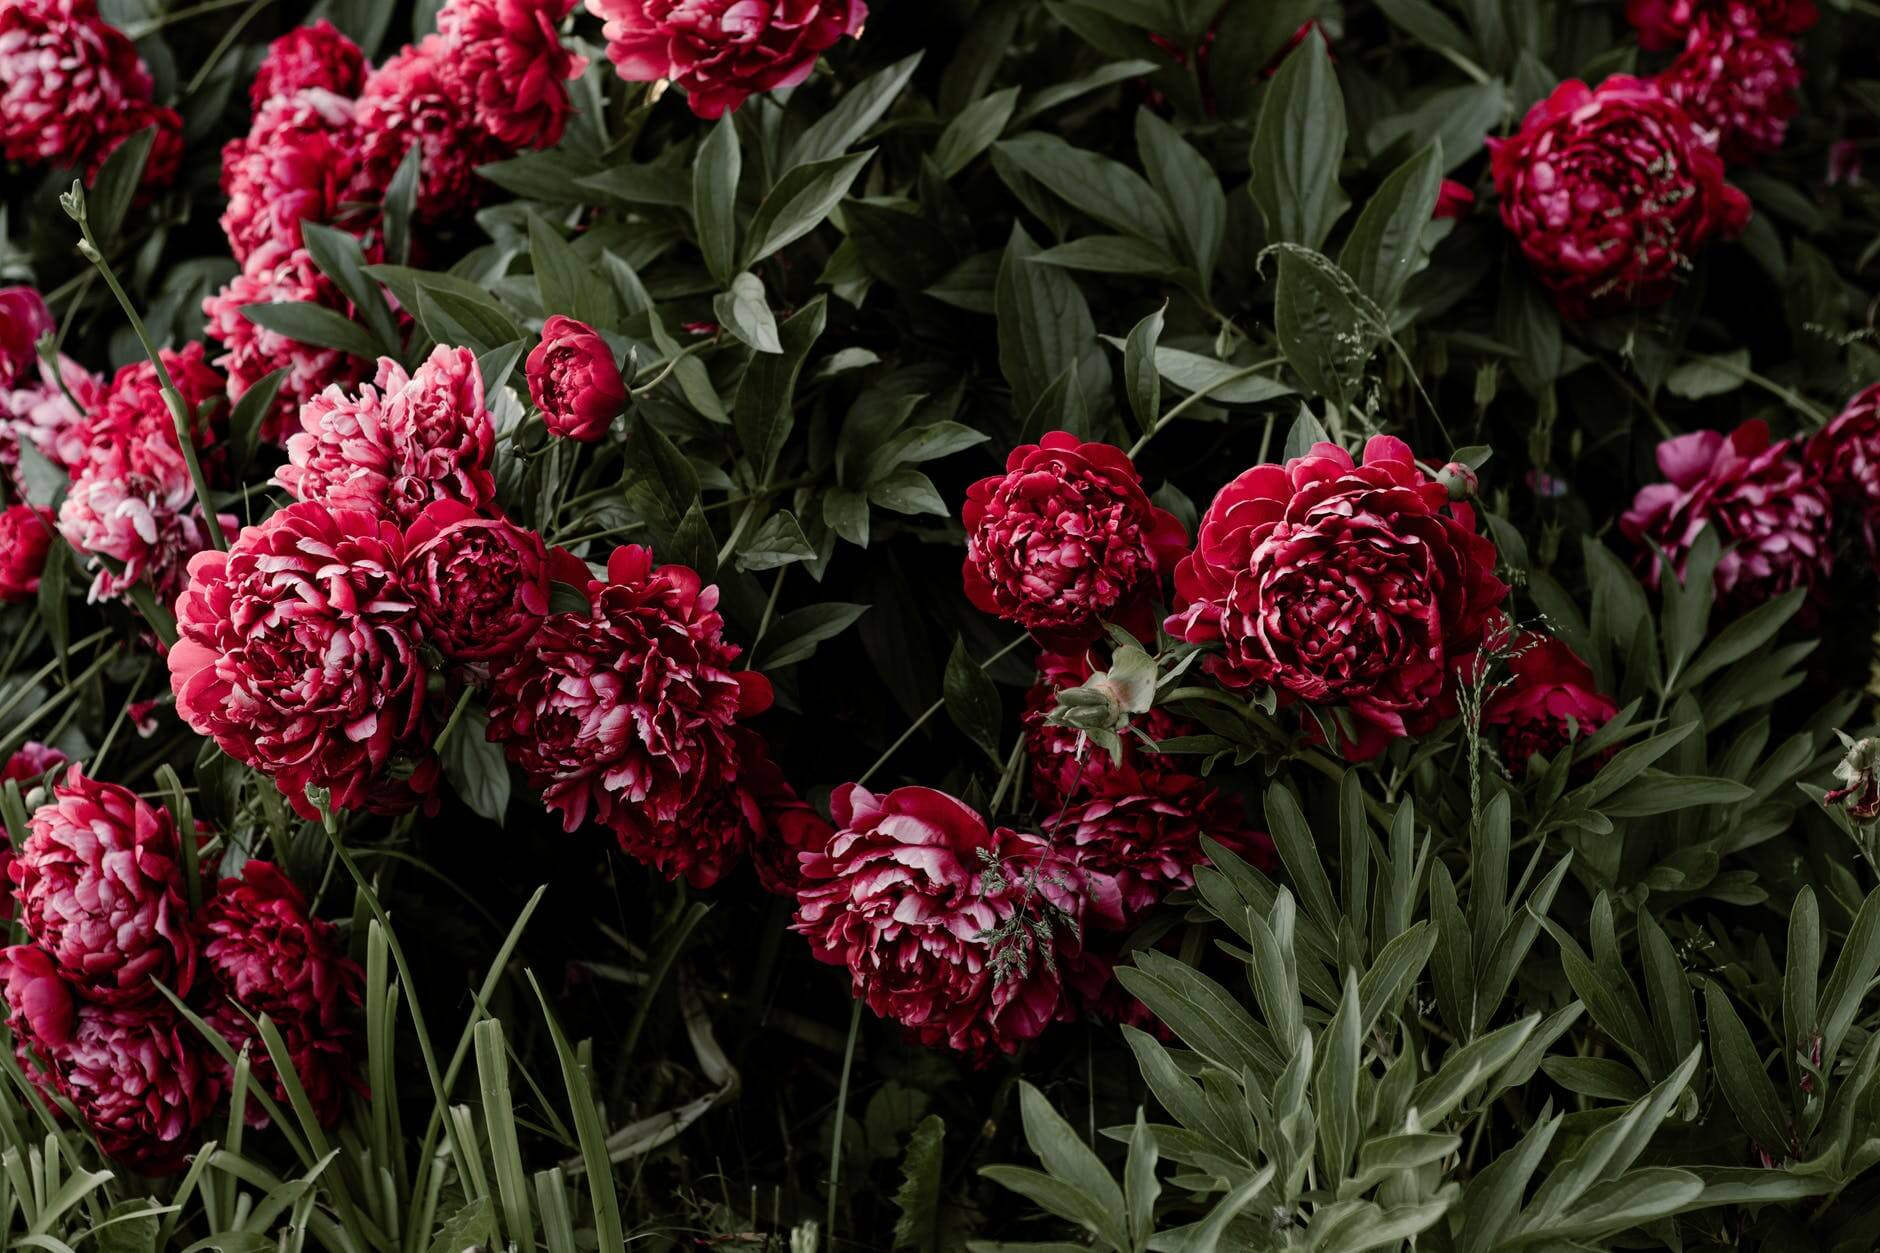 Top 5 Flowers That Are Used For Making Beauty Products